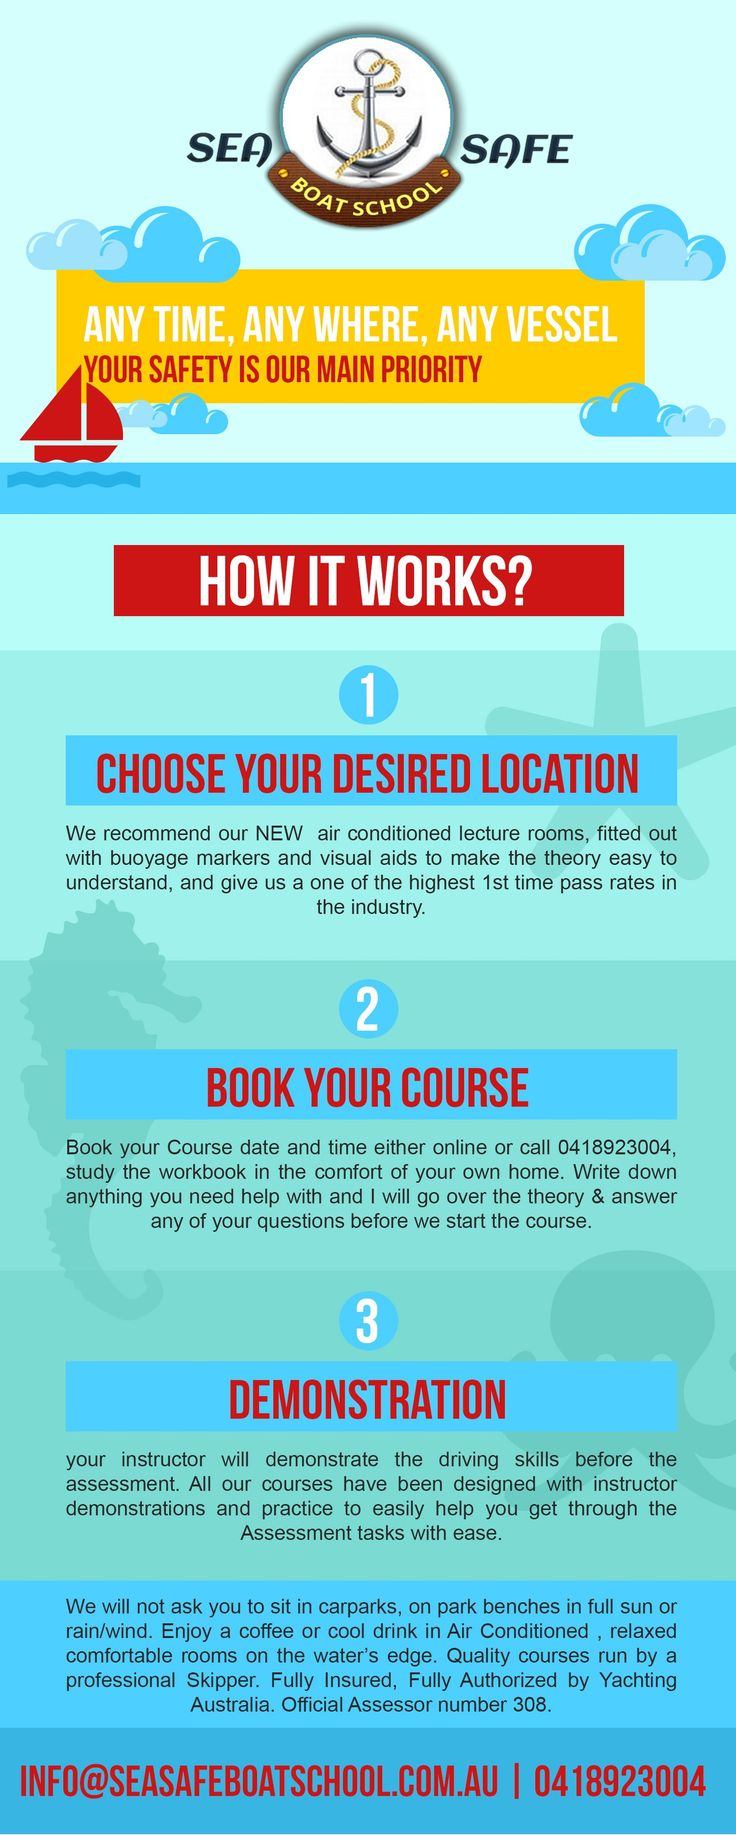 Workbooks skippers ticket workbook : 15 best Boating images on Pinterest | Boating, Perth and Ticket